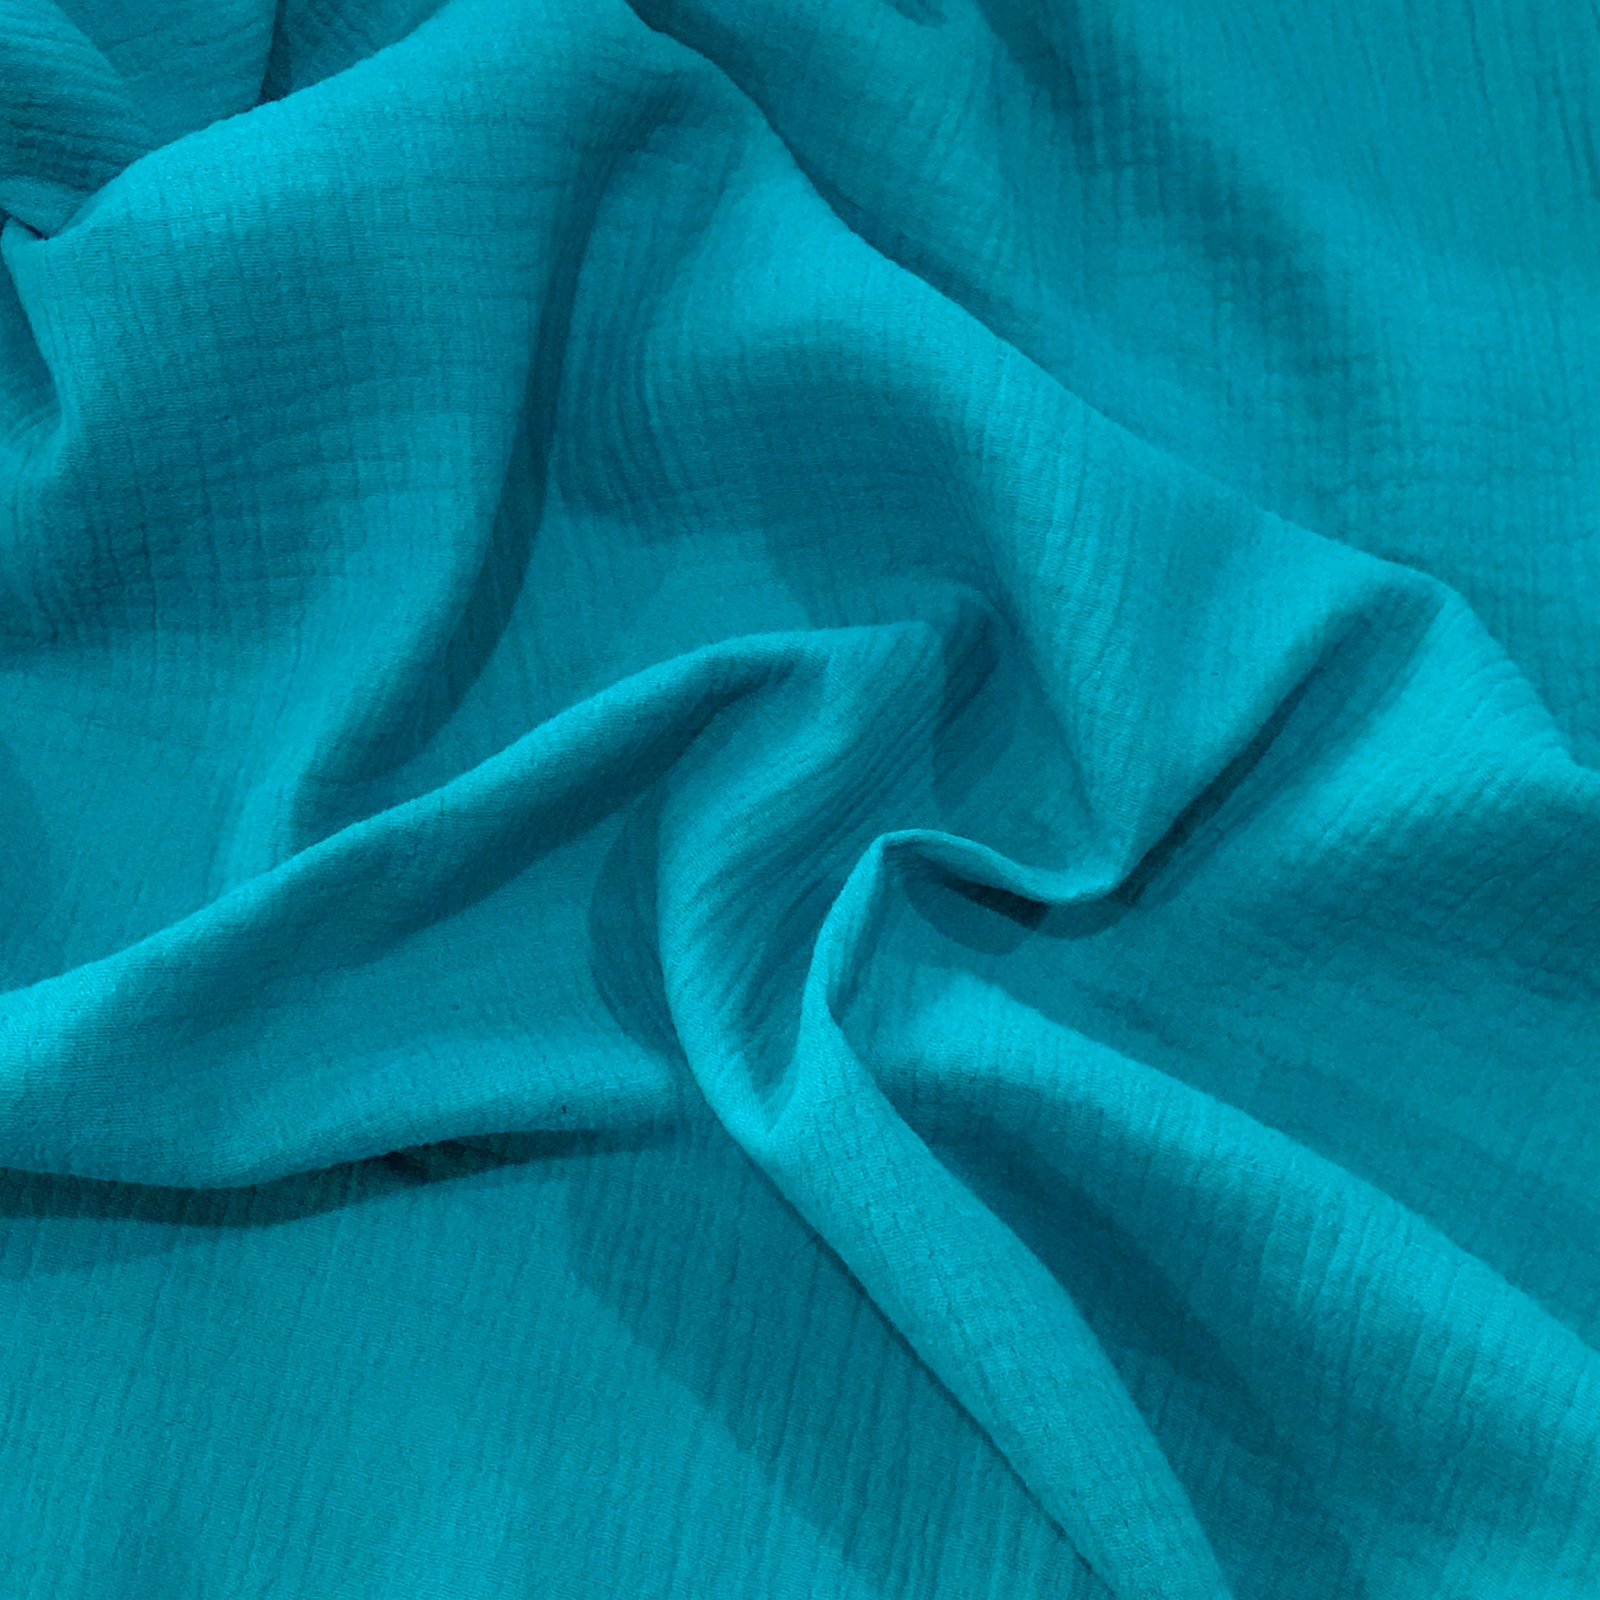 Cotton Double Gauze - Organic Teal